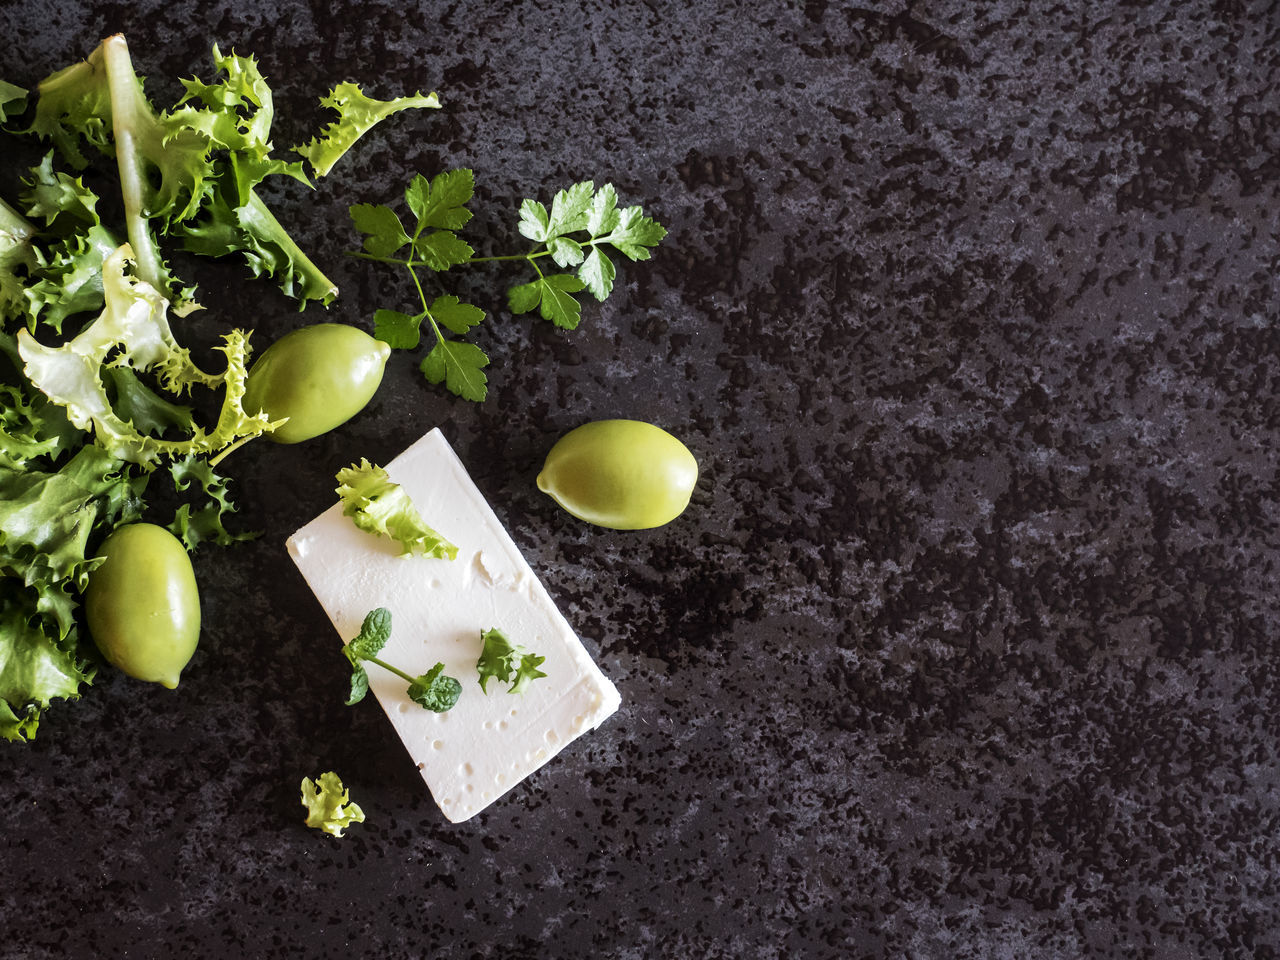 High angle view of Feta cheese with olives and green herbs on gray marble background Background Cheese Close-up Day Feta Food Freshness Gray Green Healthy Eating Healthy Lifestyle Herbs High Angle View Leaf Marble Nature No People Olives Outdoors Plant